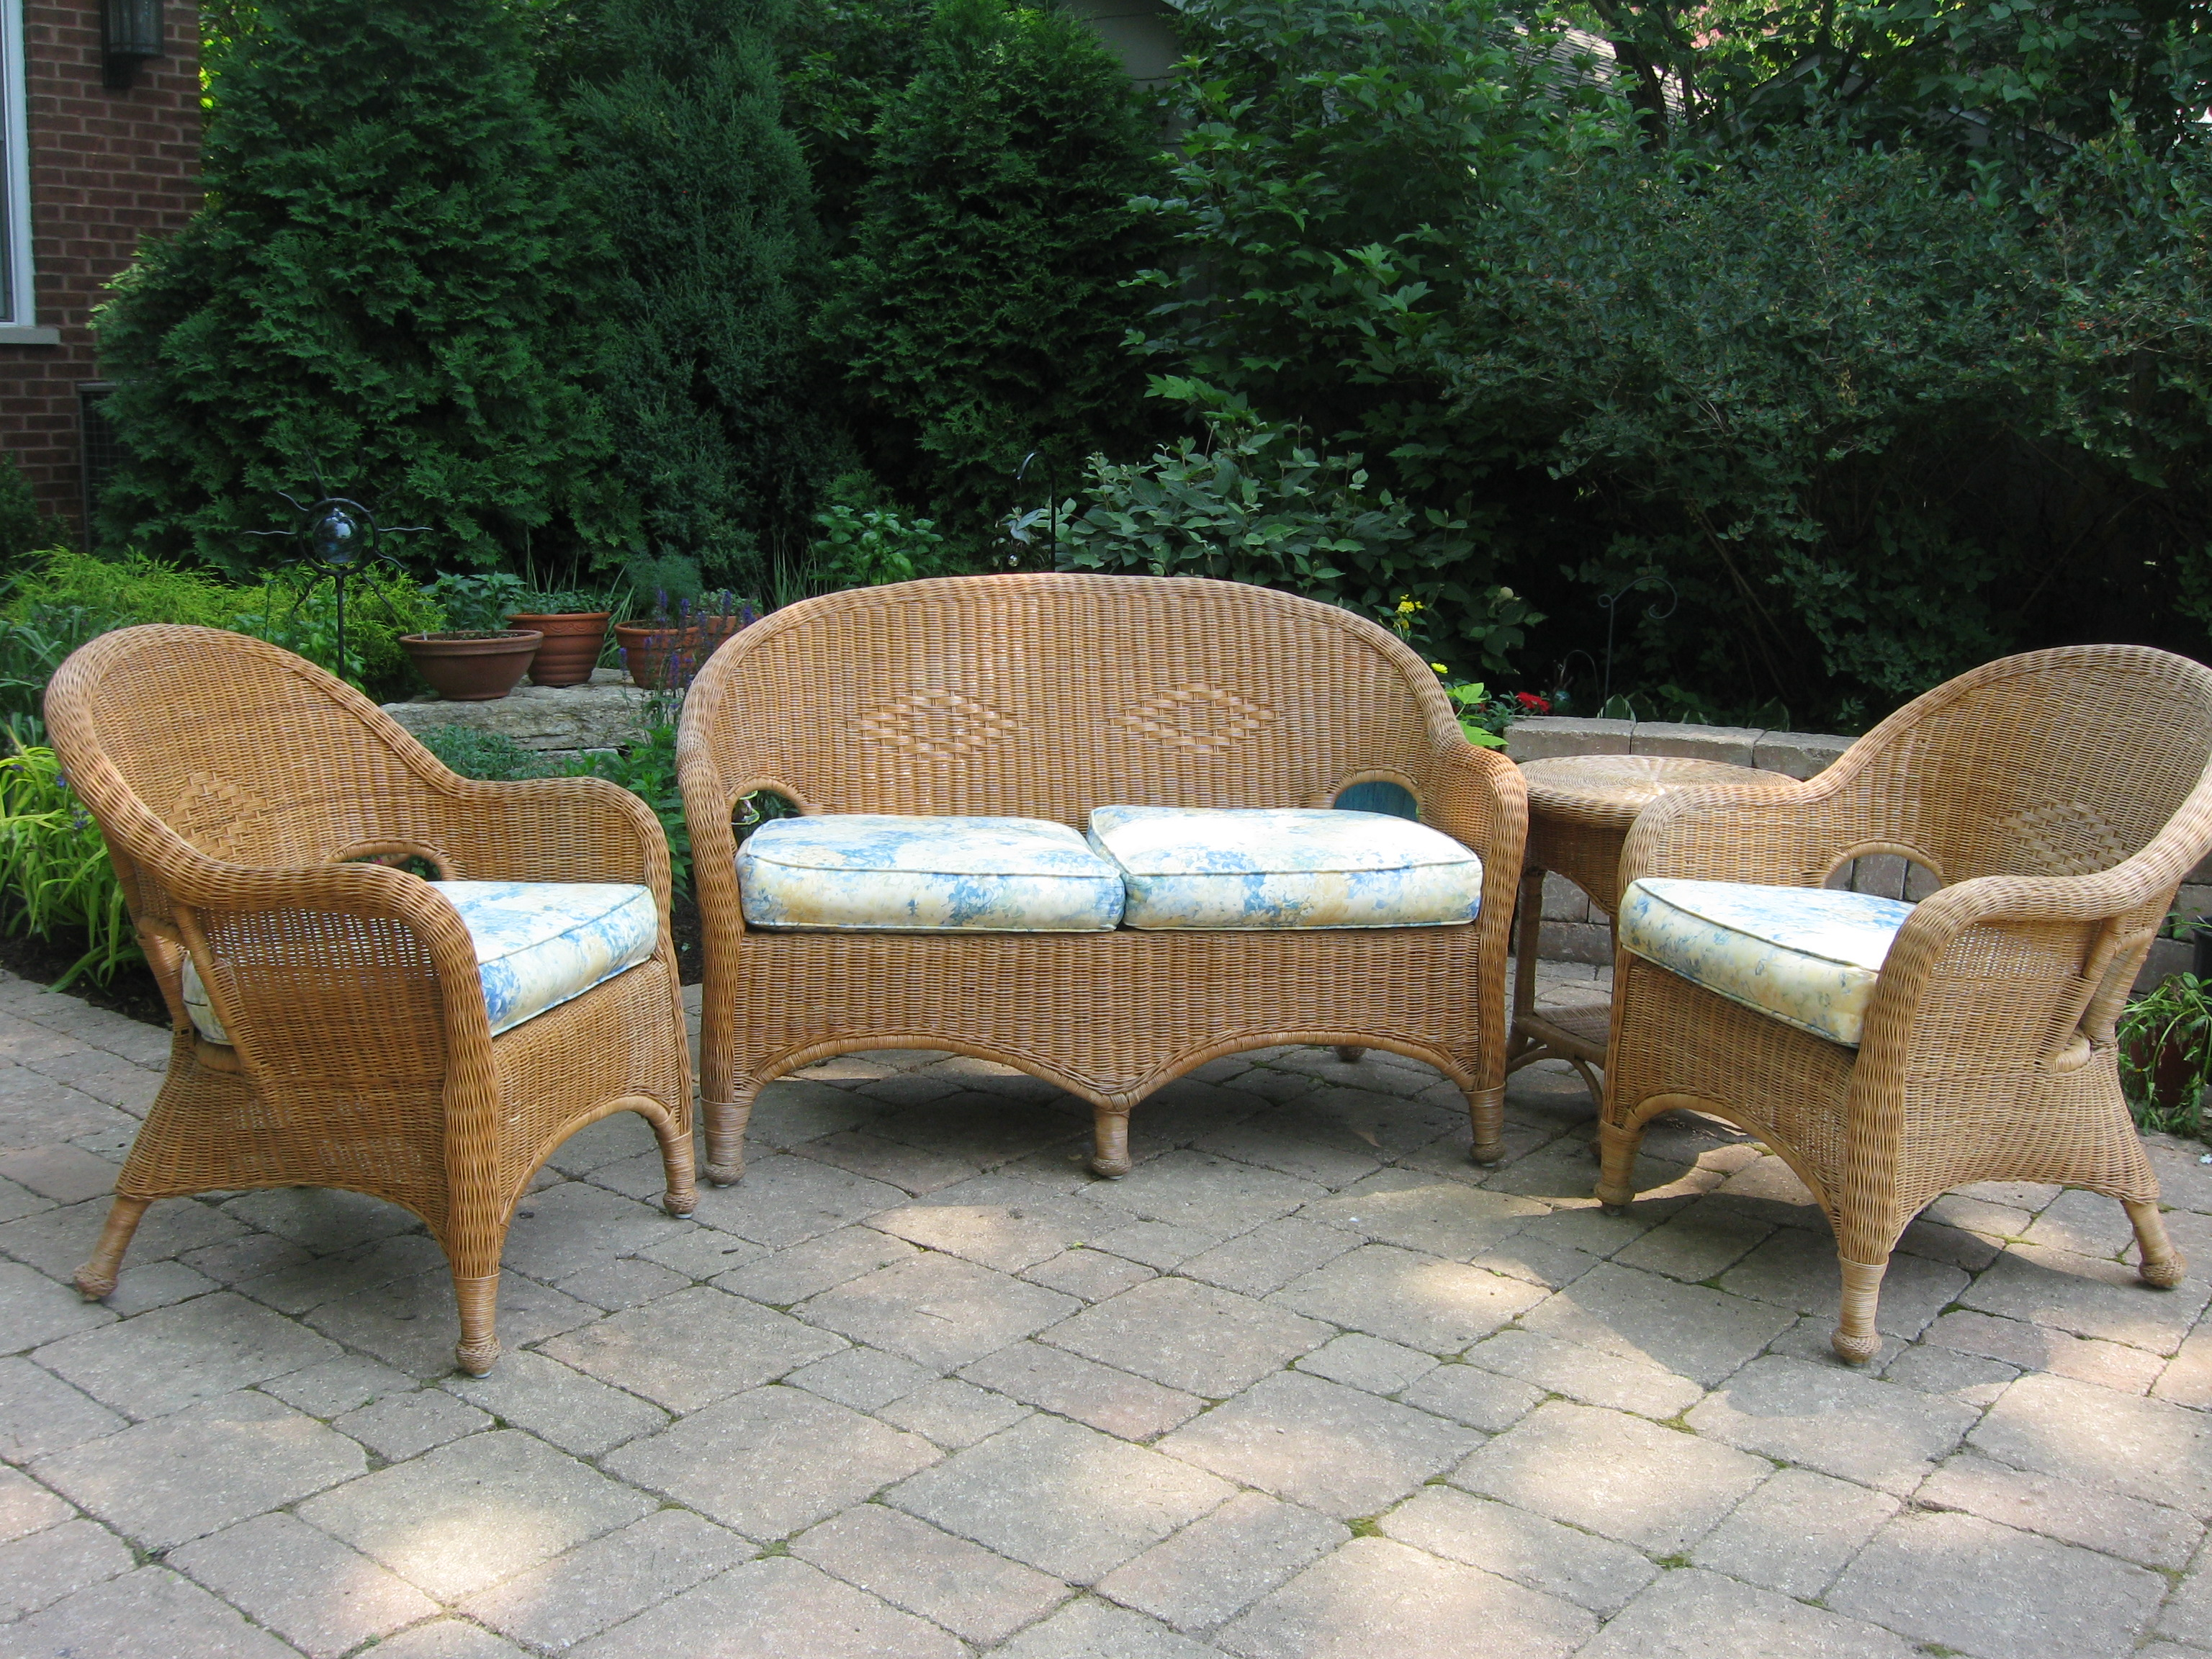 Furniture Classy Furniture Design Ideas By Pier One Wicker